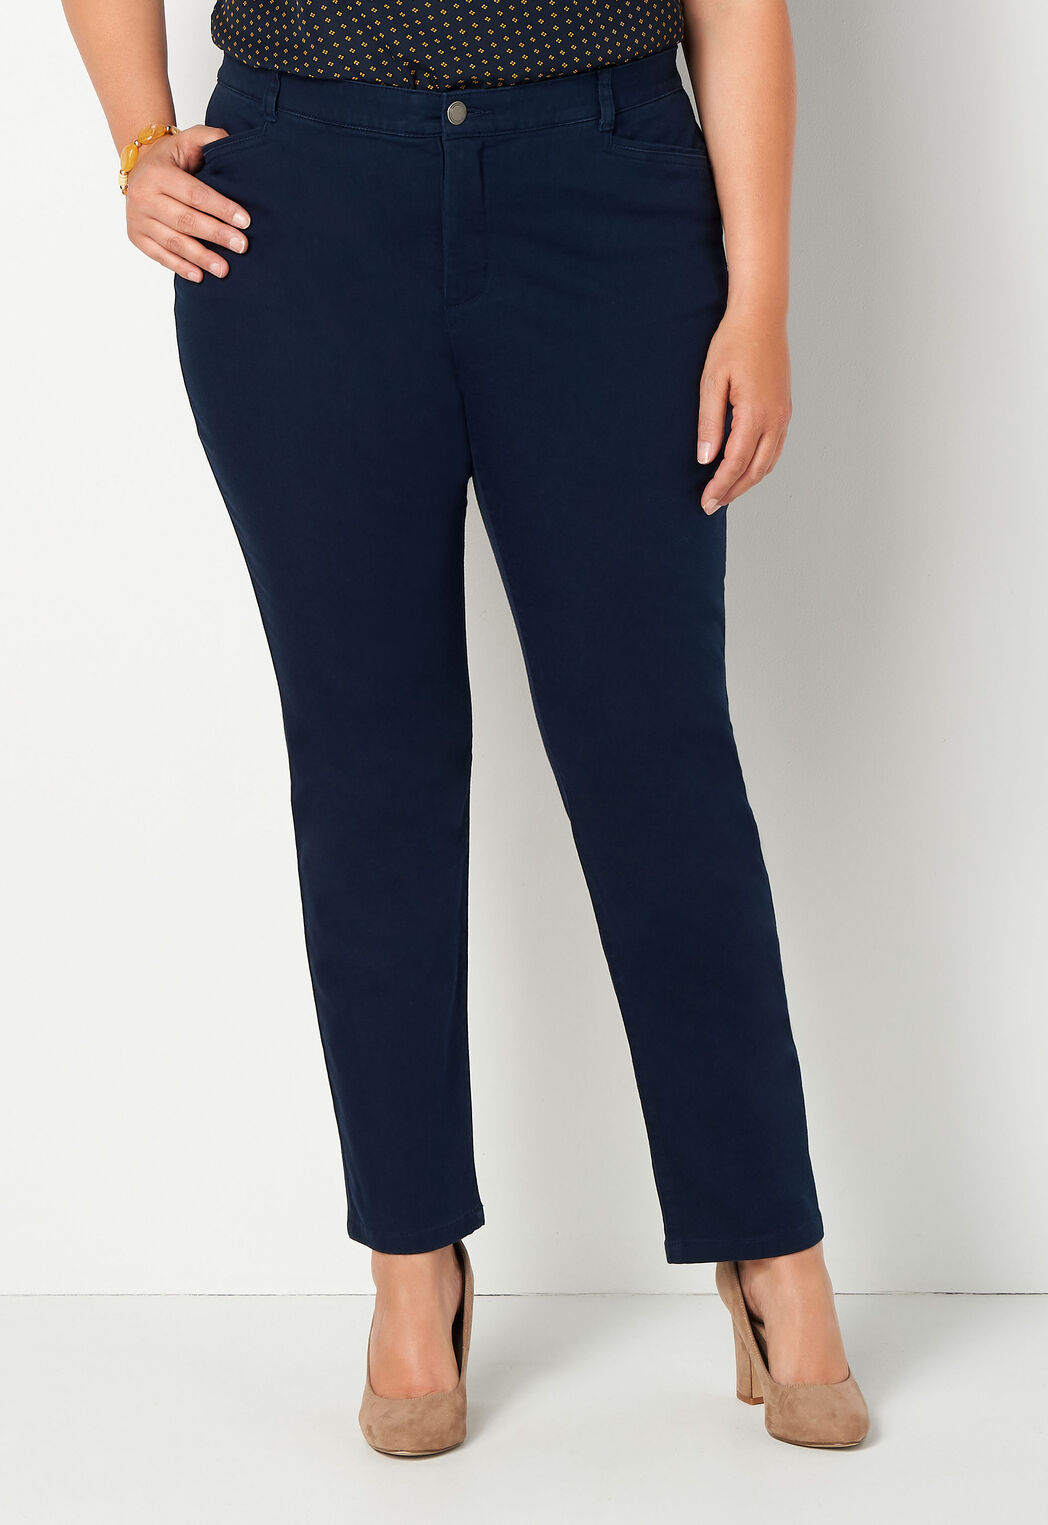 9d3341aa81211 Signature Slimming Tapered Leg Colored Denim Plus Size Pant Average ...